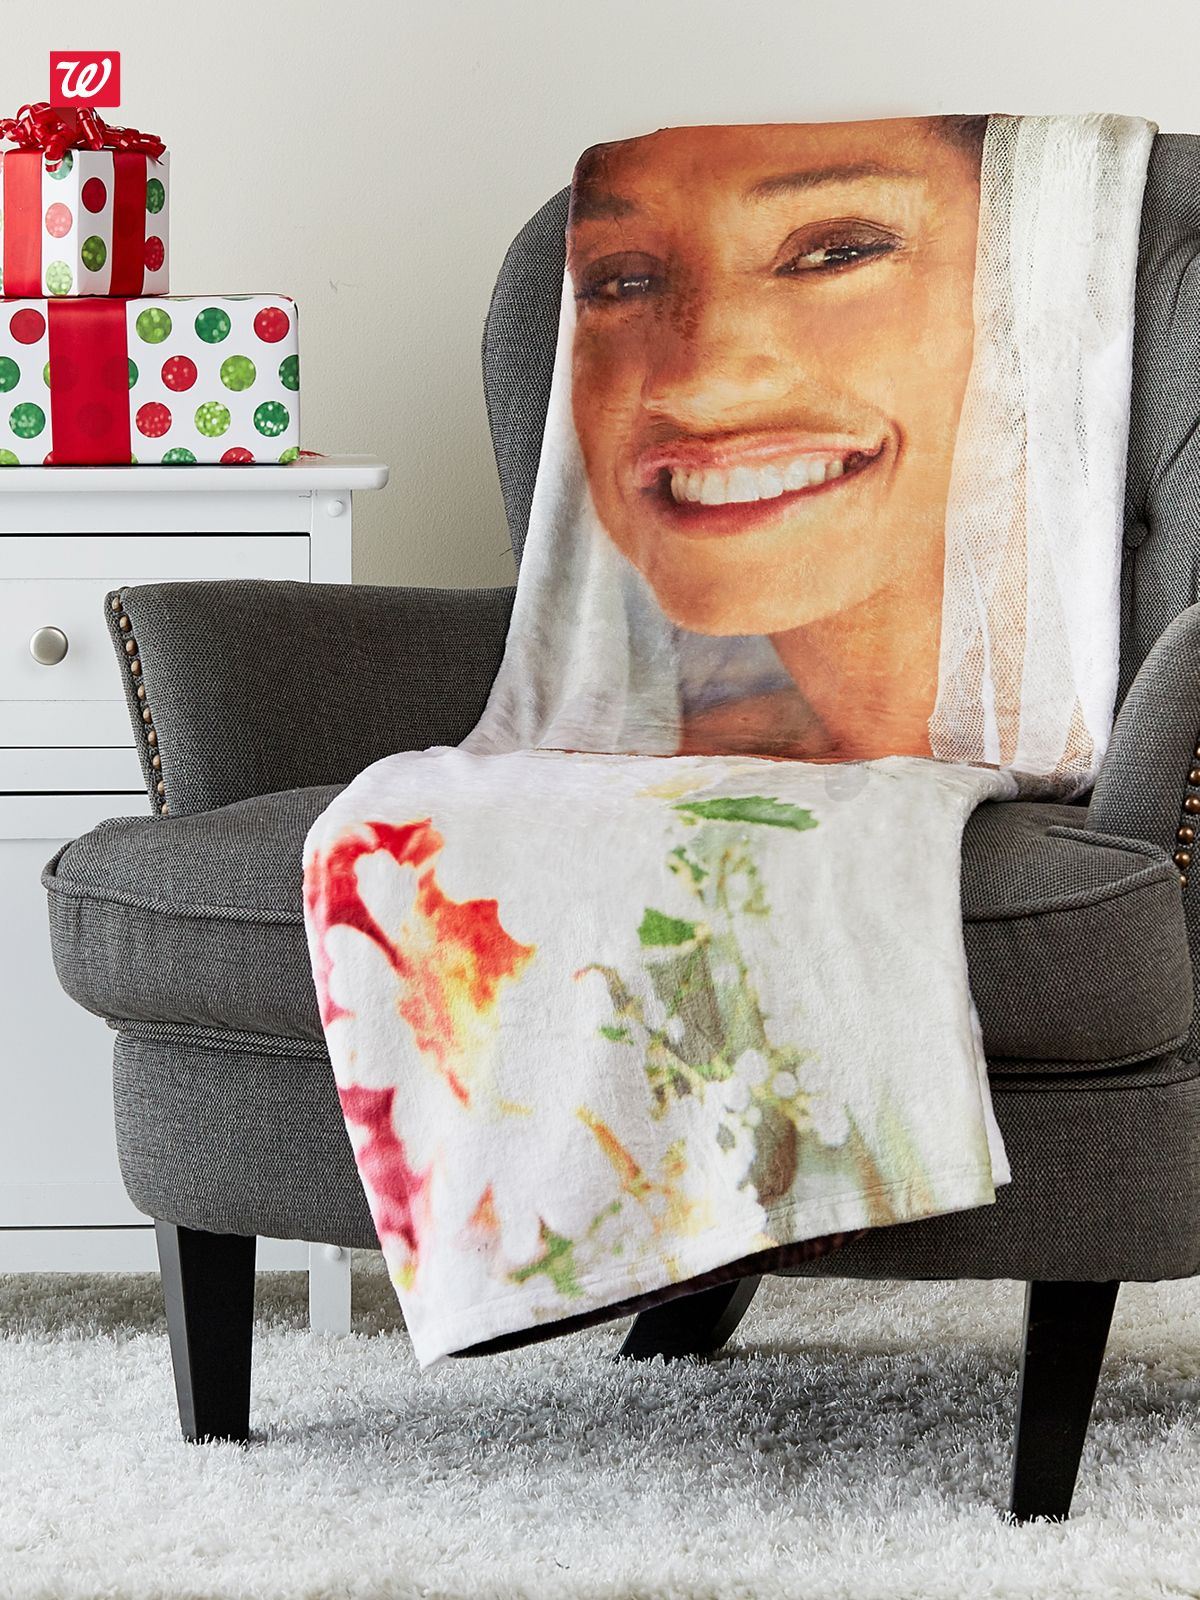 Cozy Up With A Fleece Photo Blanket To Warm Your Spirits All